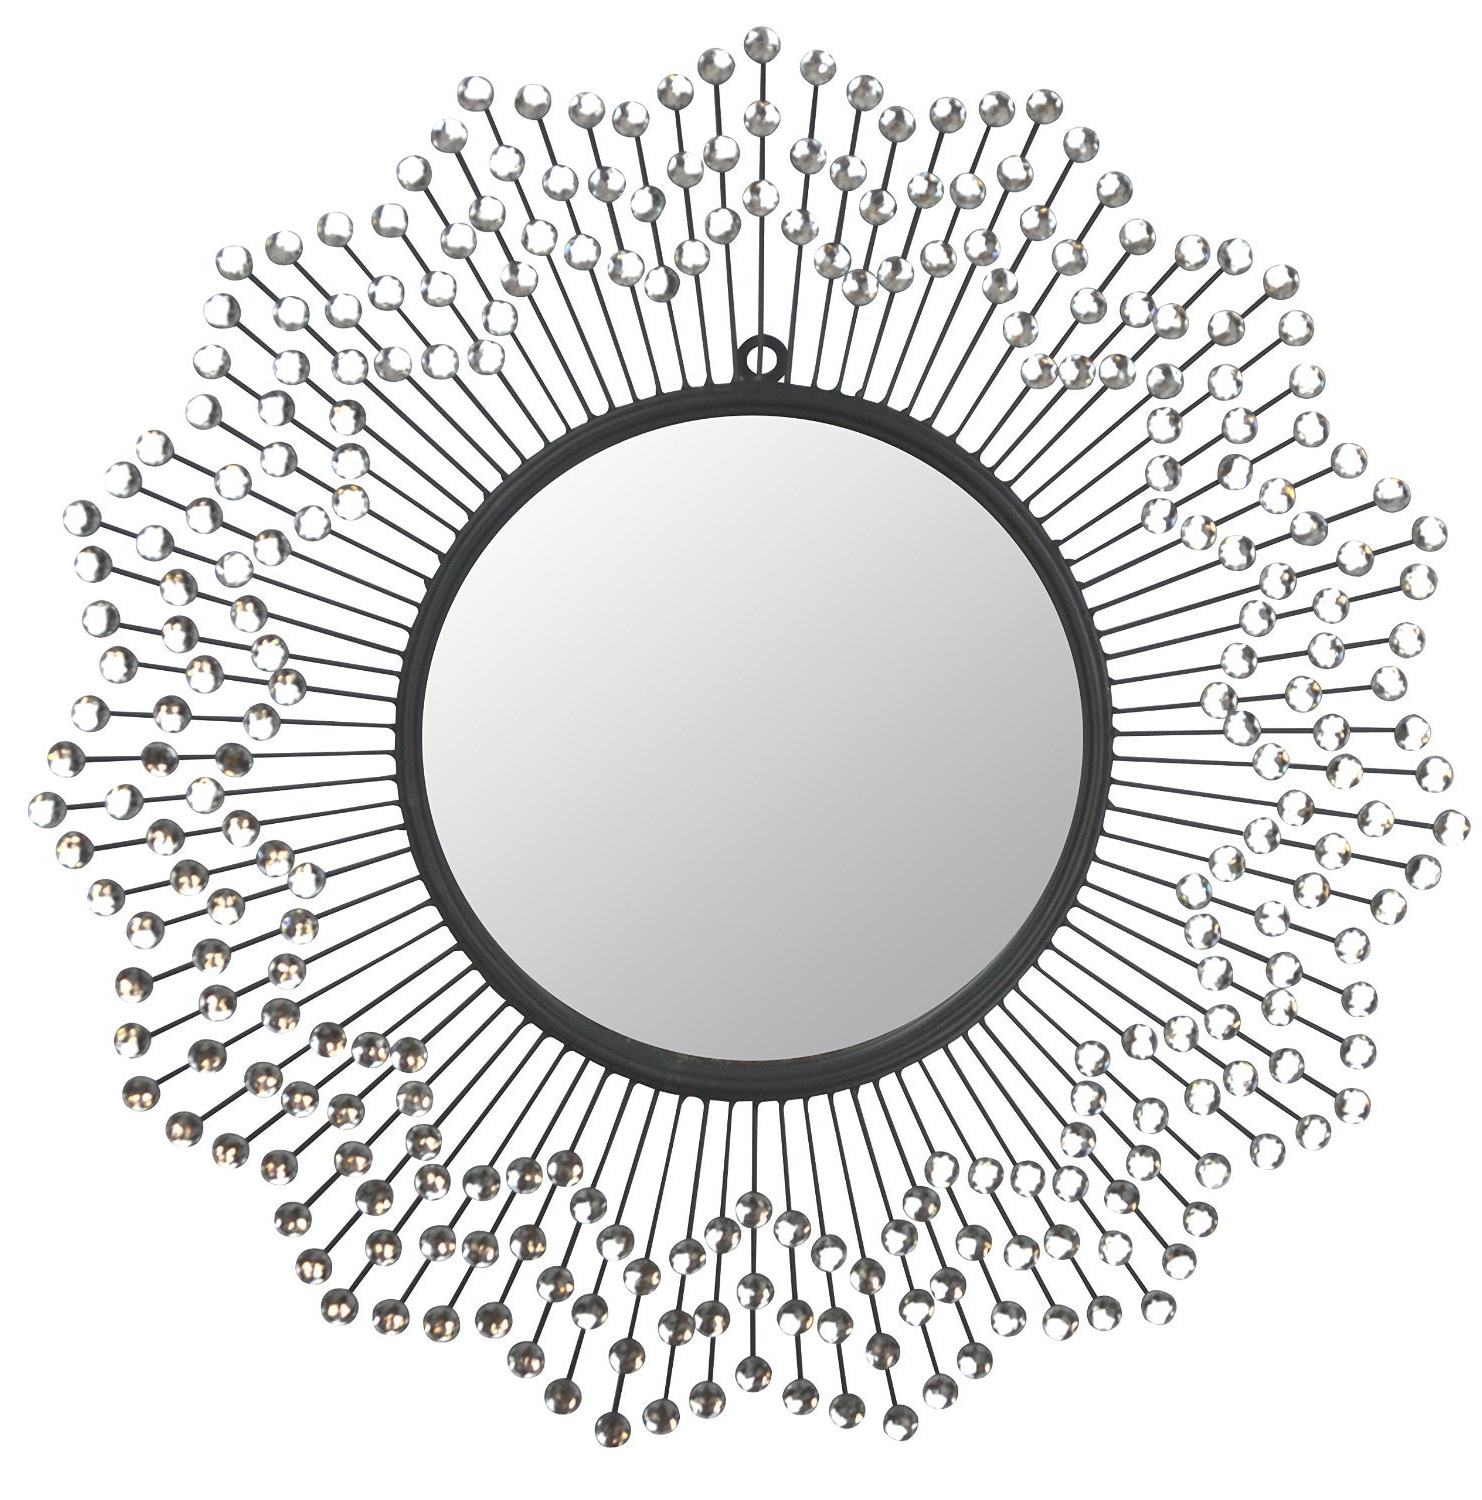 "Trendy Decorative Round Wall Mirrors Regarding Lulu Décor, Celebration Metal Wall Mirror, Frame 24"", Round Decorative Mirror For Living Room And Office Space (Gallery 9 of 20)"